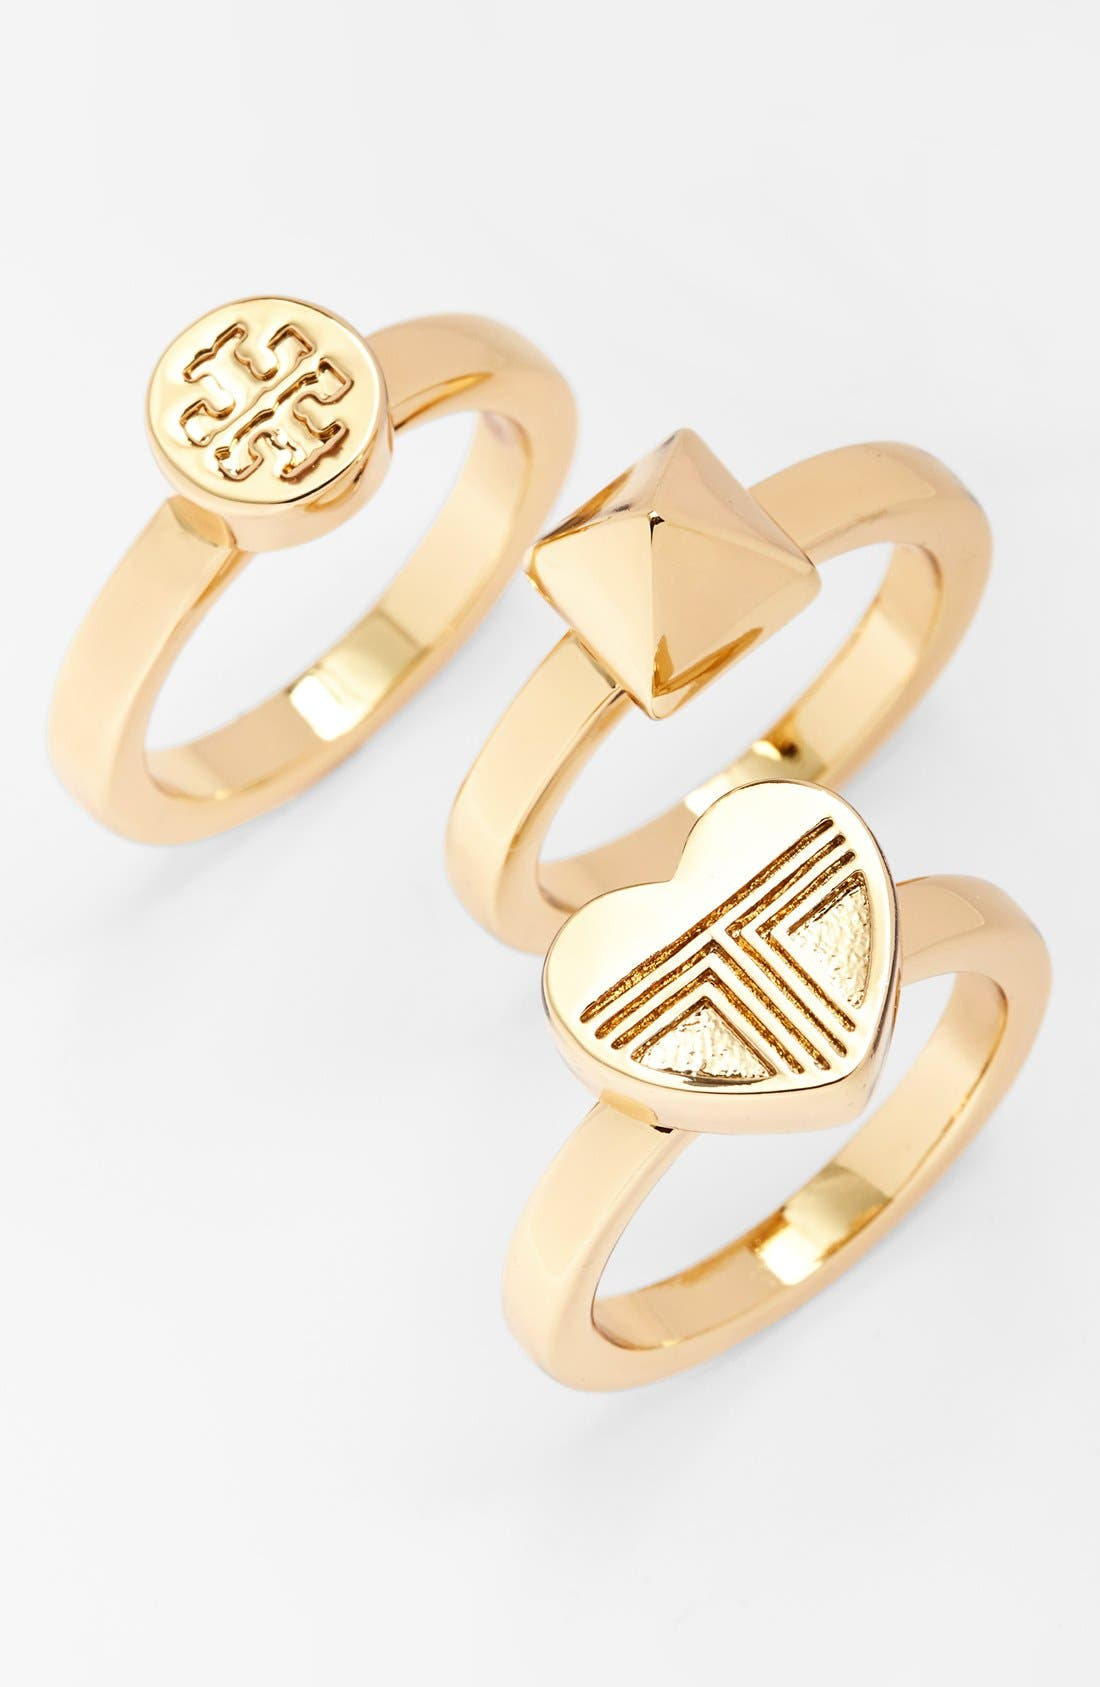 Main Image - Tory Burch 'Adeline' Stackable Rings (Set of 3)